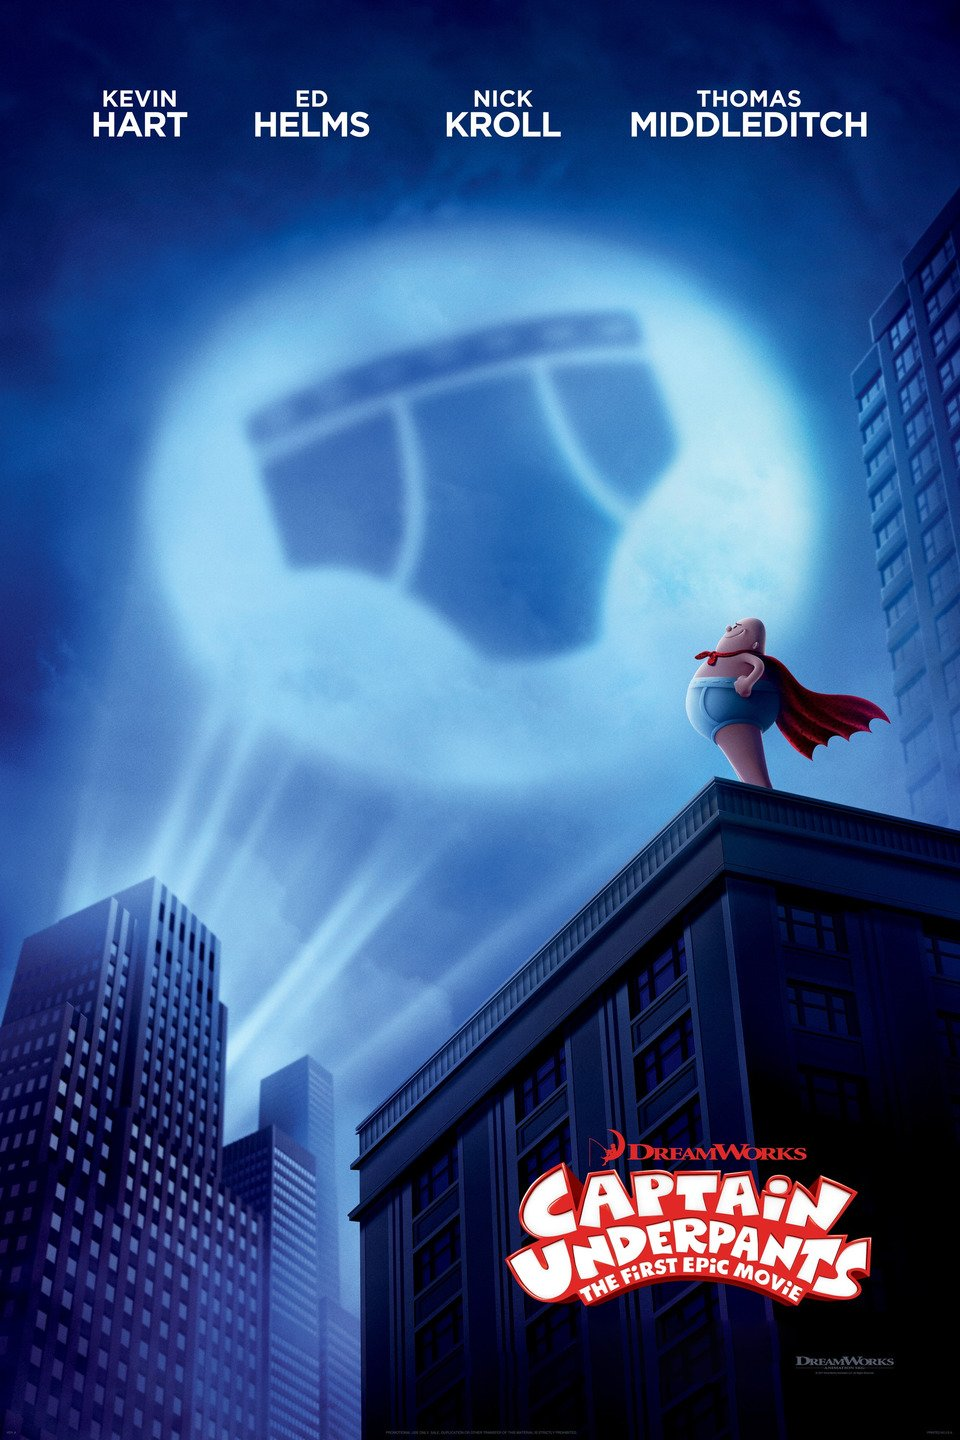 Captain Underpants: The First Epic Movie poster art